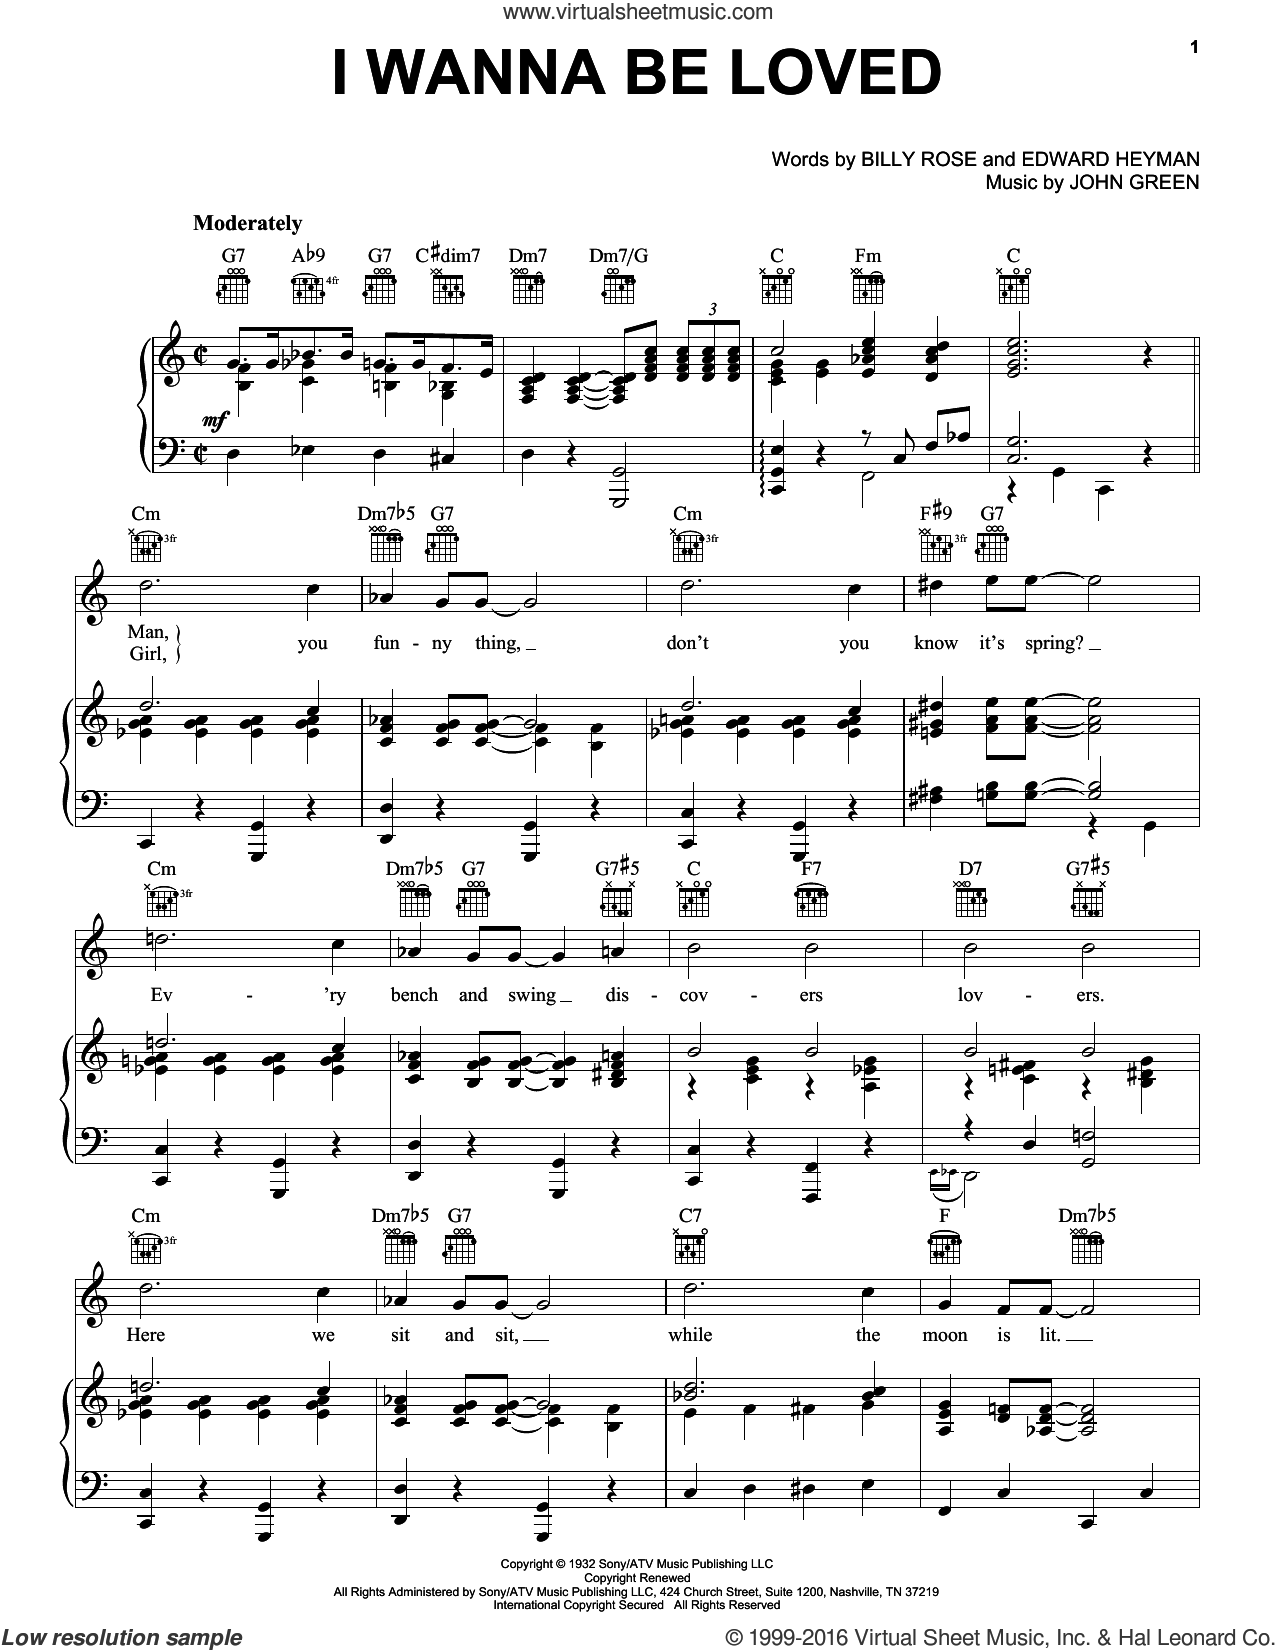 I Wanna Be Loved sheet music for voice, piano or guitar by Johnny Green